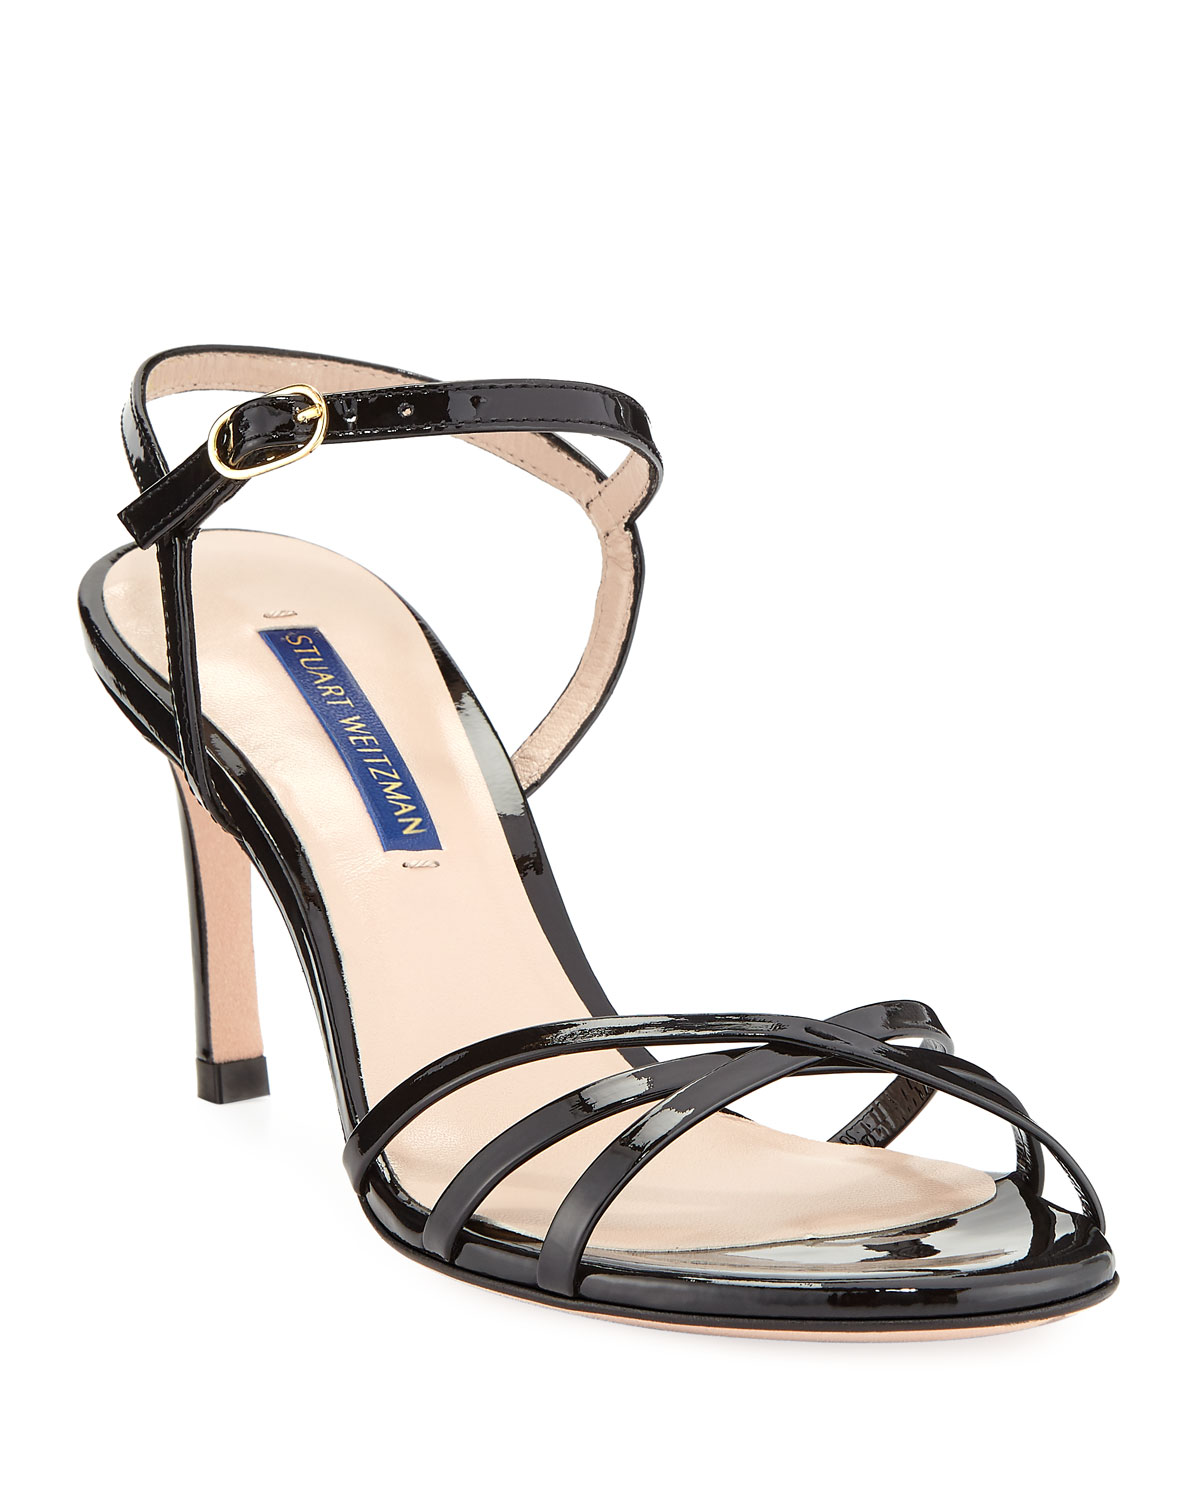 979be5debdc4 Stuart Weitzman Starla Patent Leather Sandals